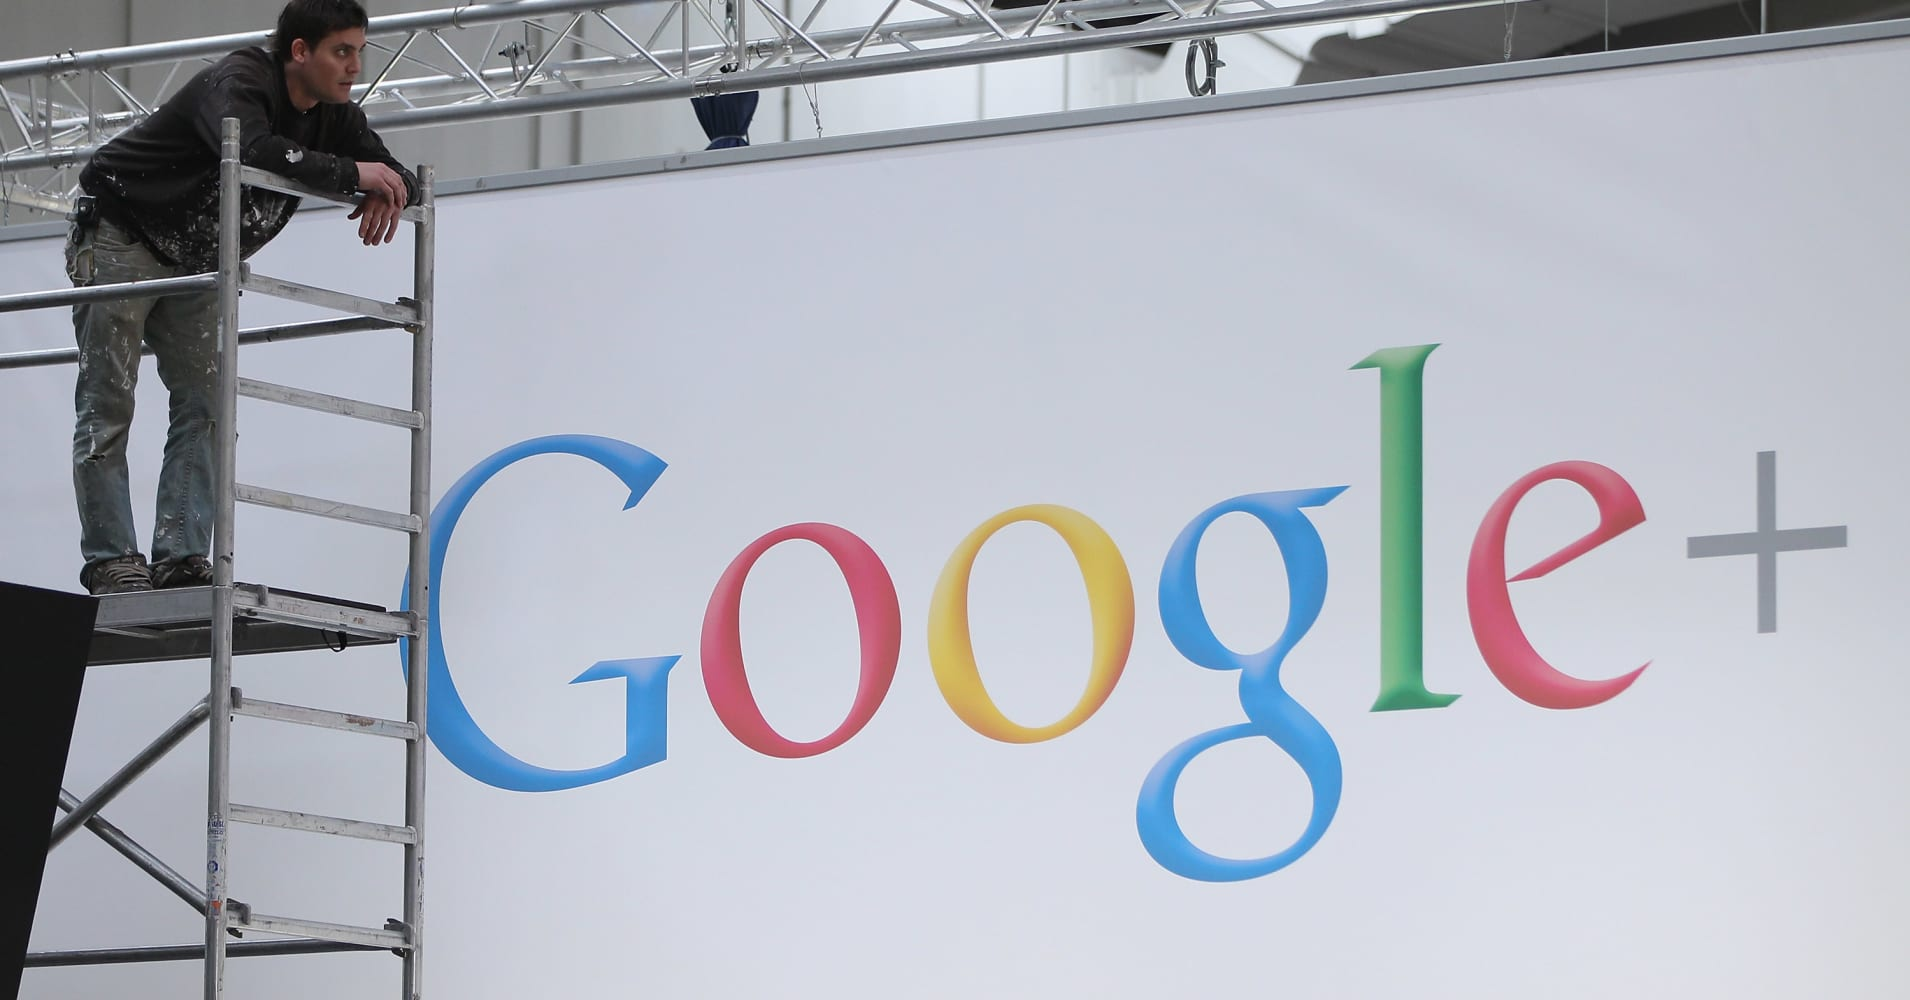 Google shutting down social network sooner because of new security bug